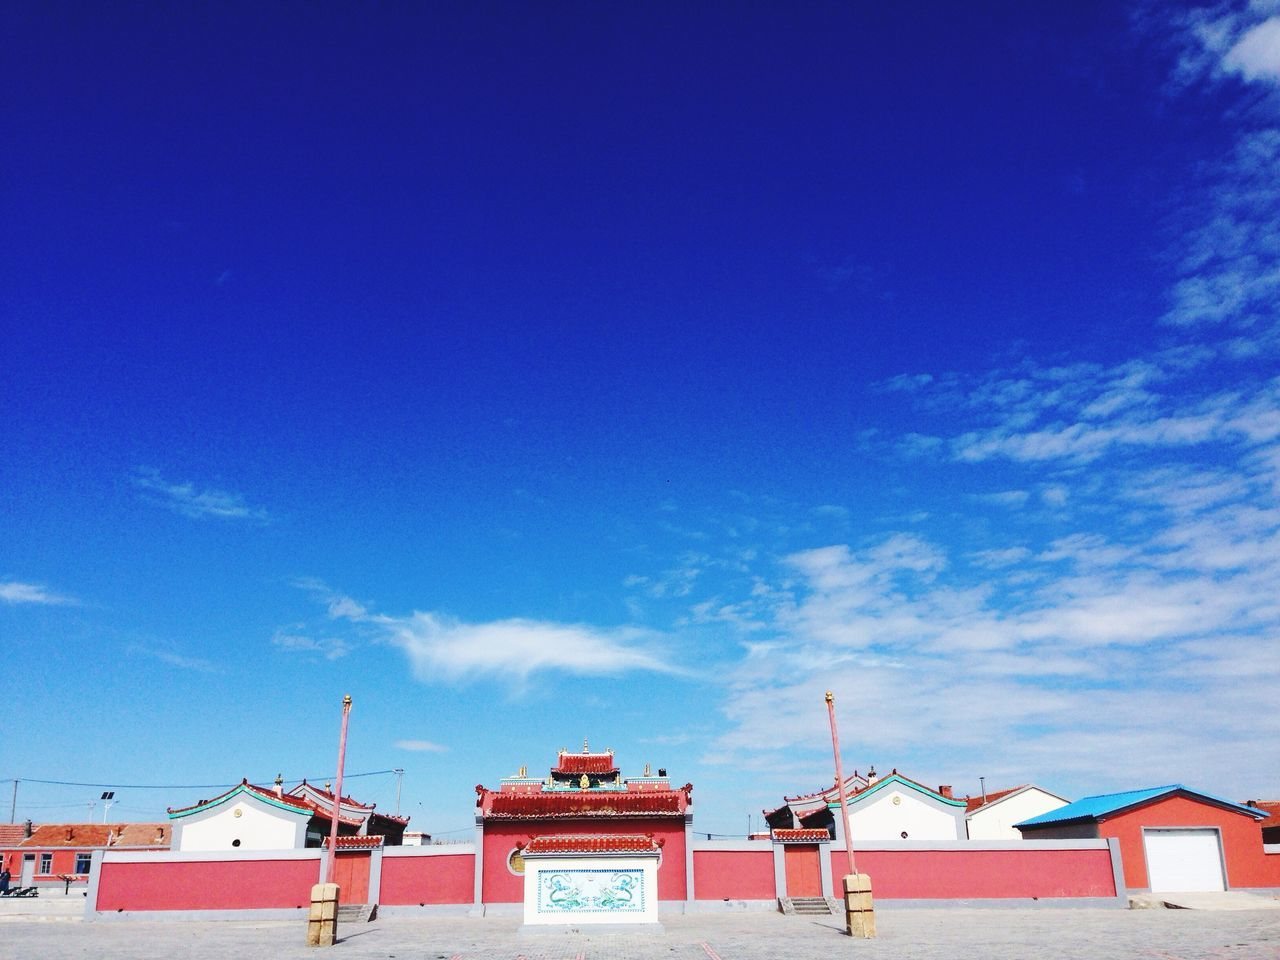 architecture, built structure, blue, building exterior, sky, outdoors, red, day, no people, cloud - sky, low angle view, nature